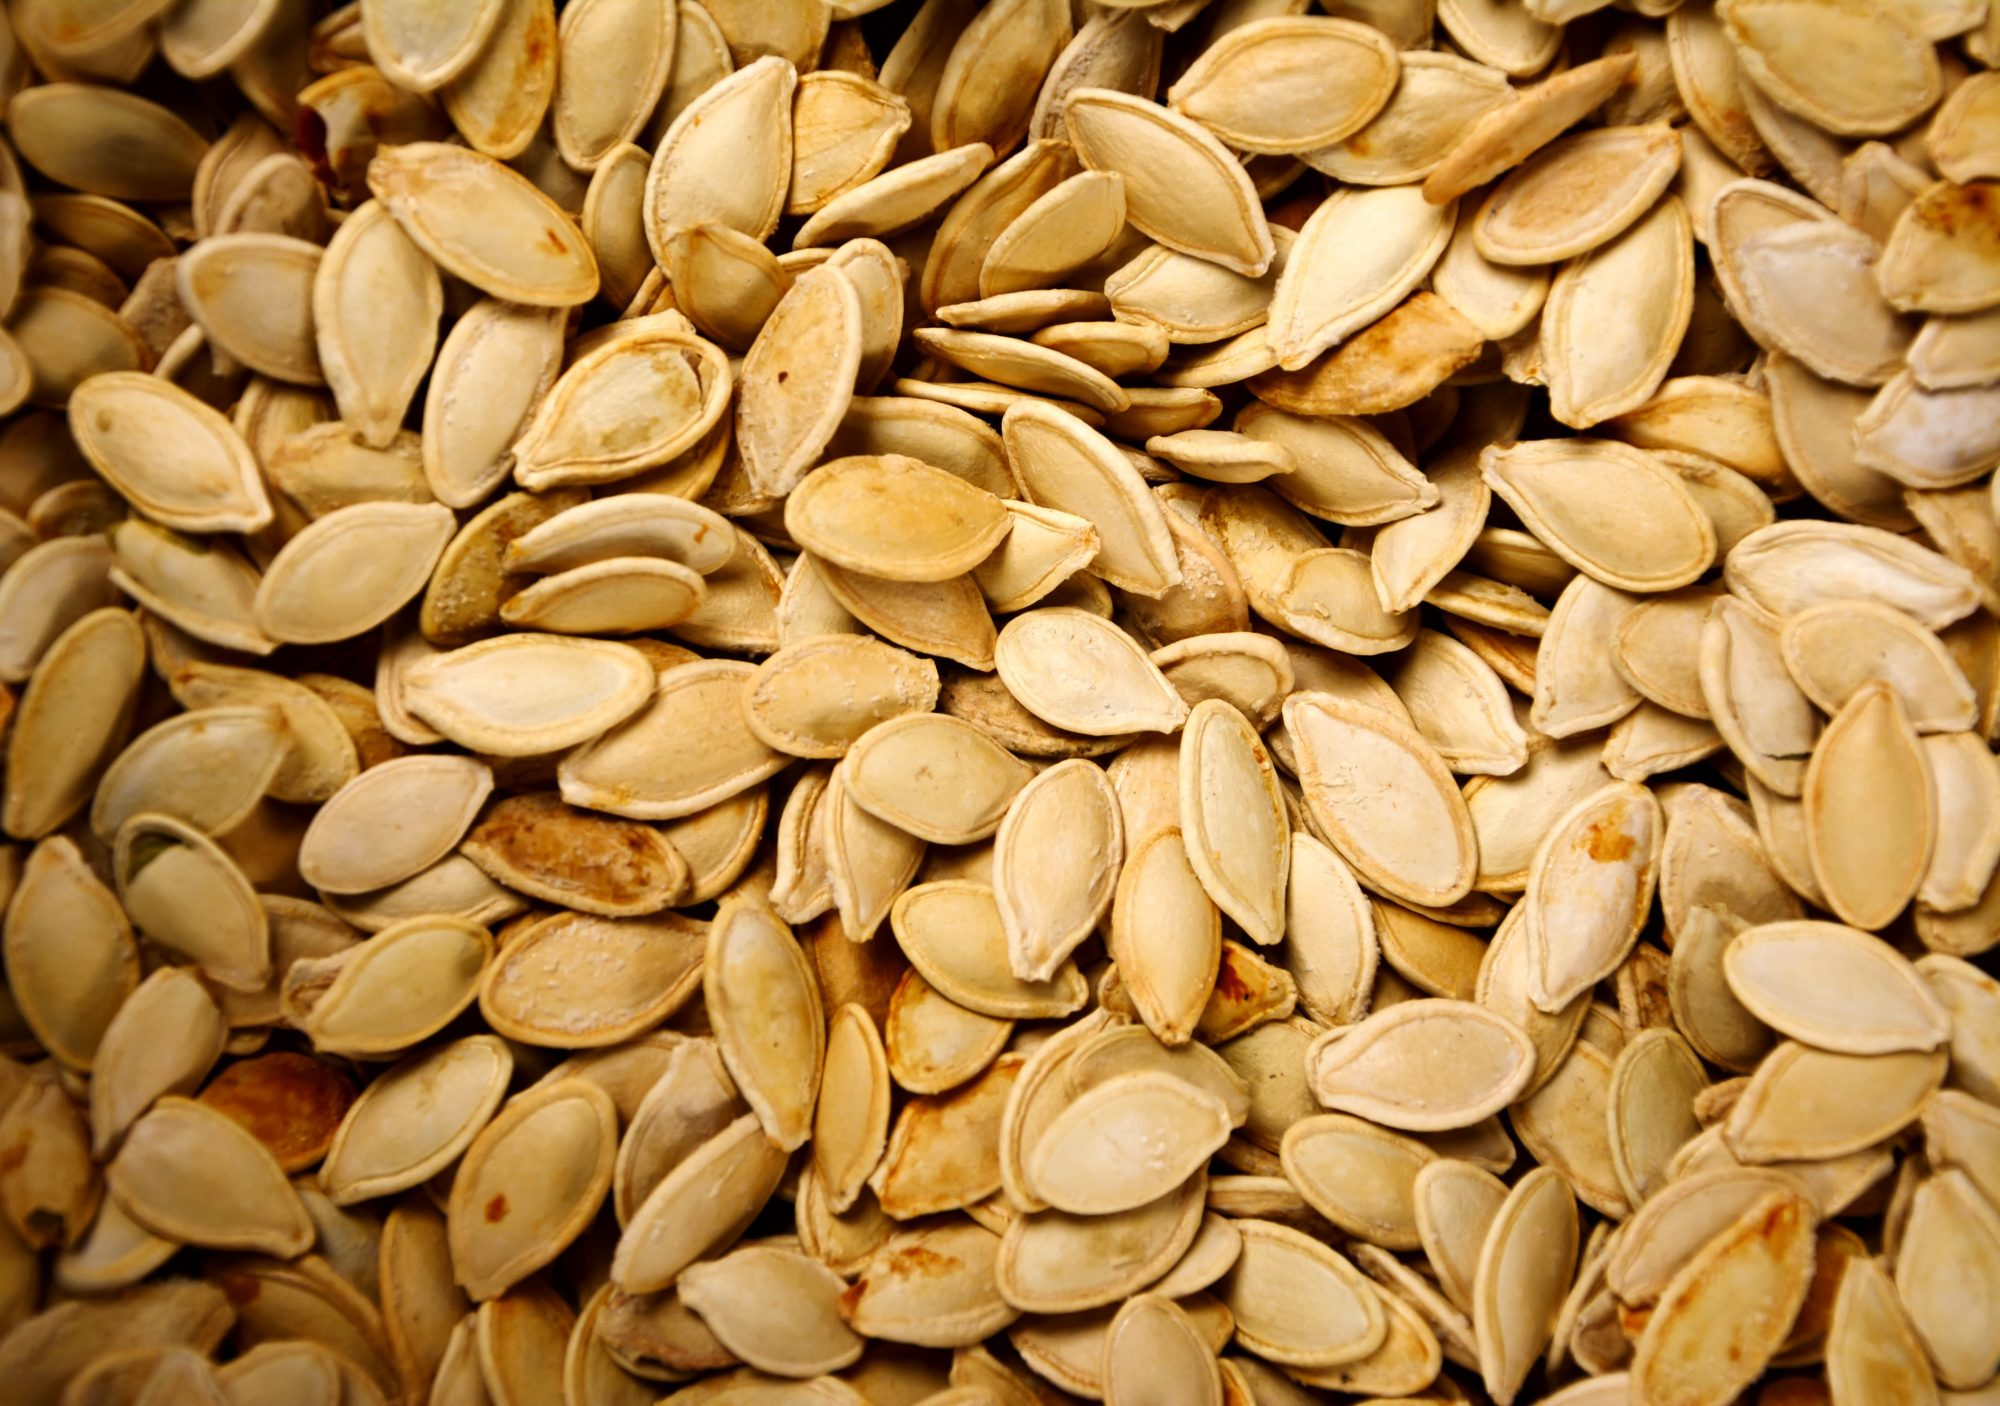 Roasted pumpkin seeds Getty 8/31/20